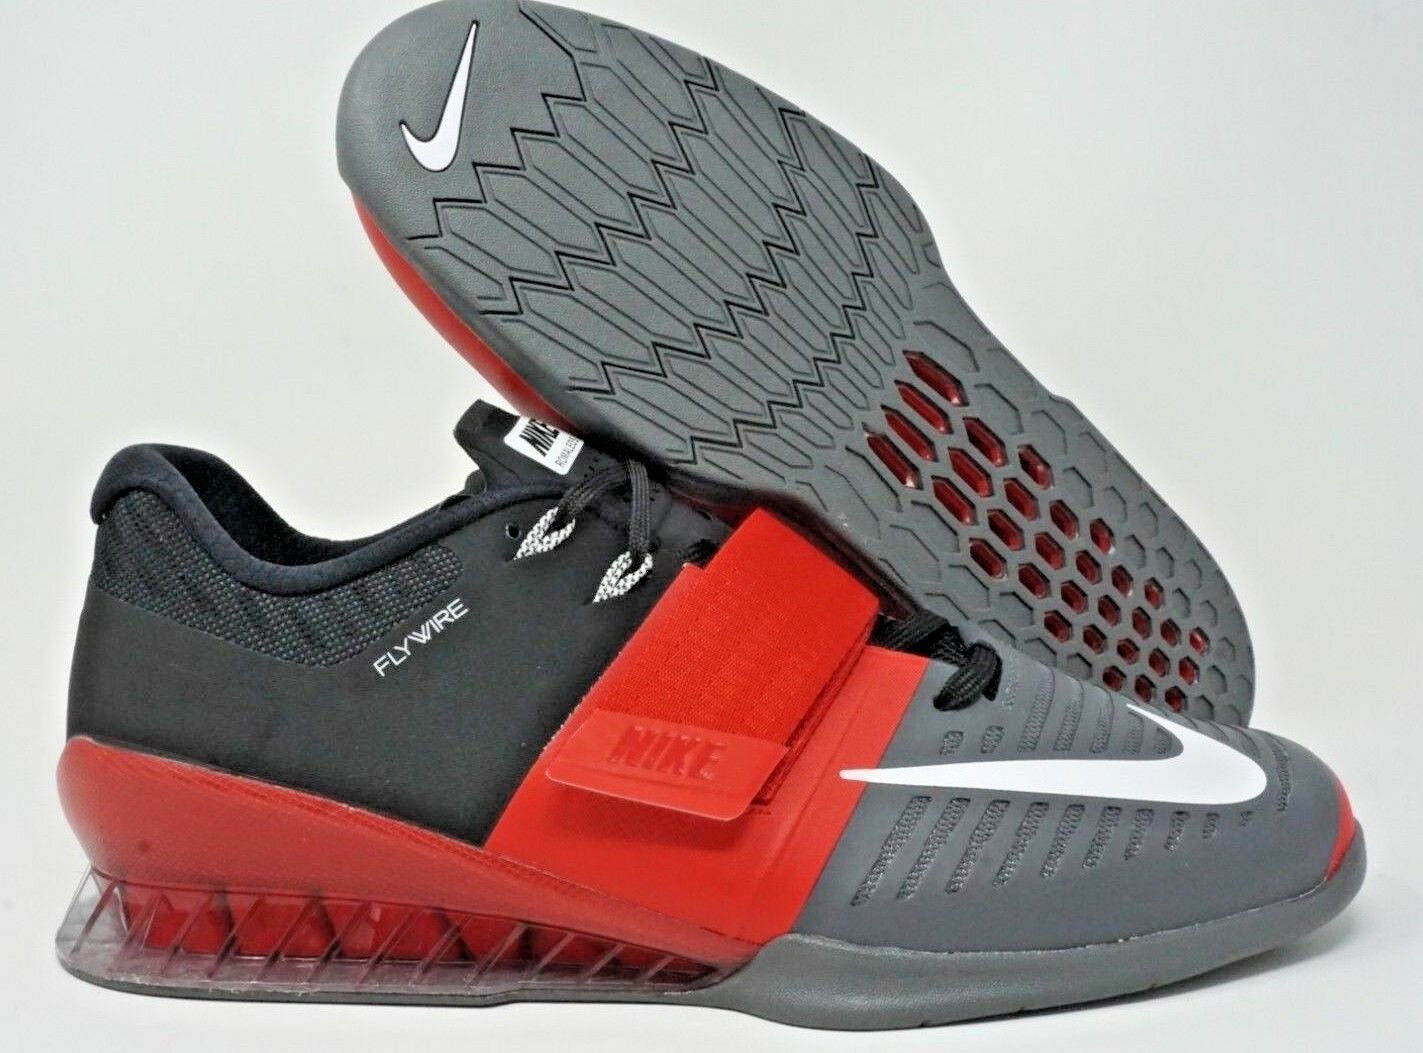 Nike Romaleos 3 Cross Training  Weightlifting shoes Black Red Multi Size